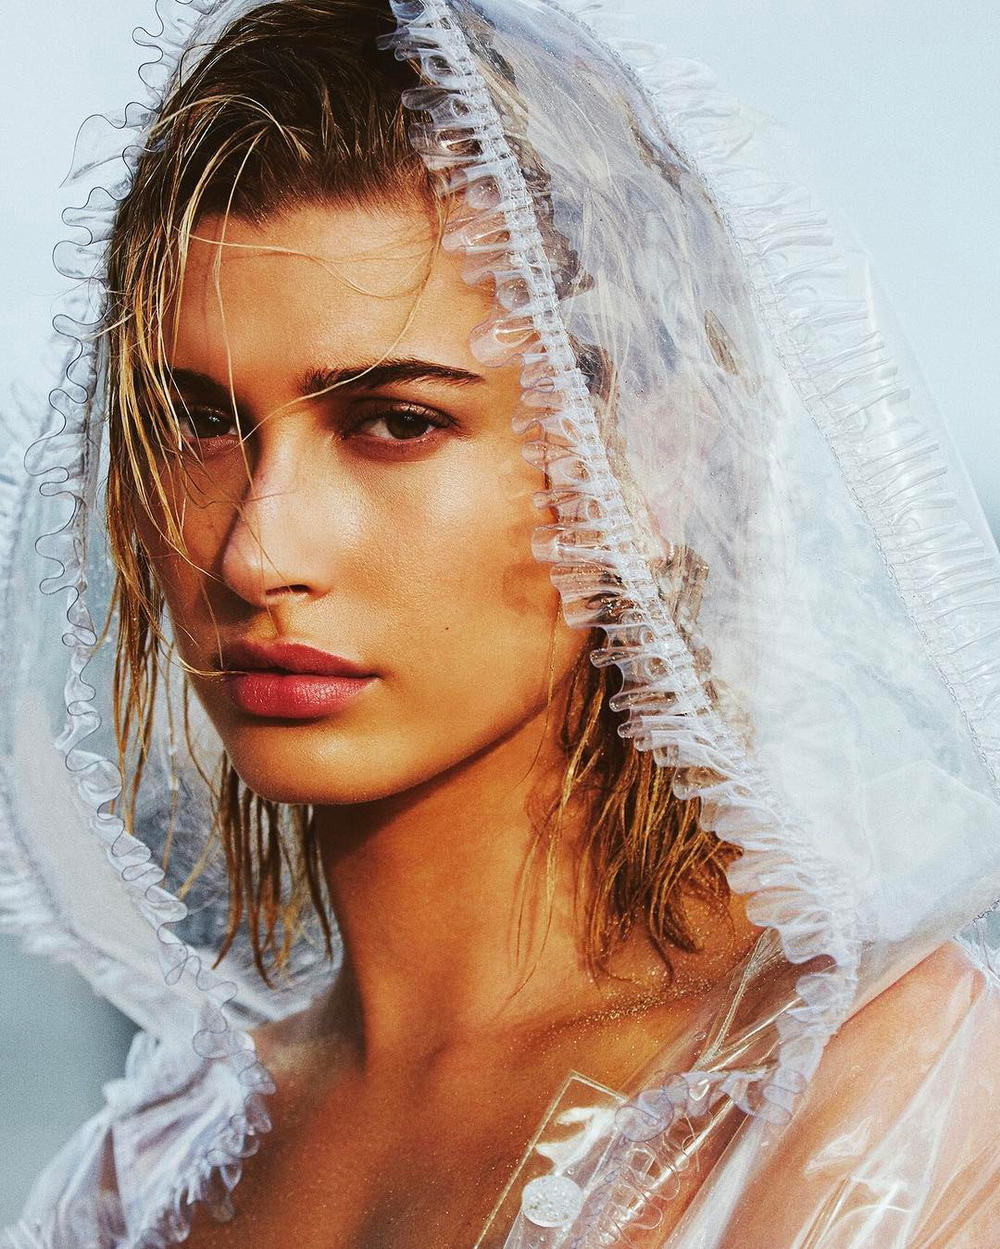 Hailey Baldwin Elle Italia June 2018 Magazine Cover Editorial Sea Ocean Clear Hood Jacket